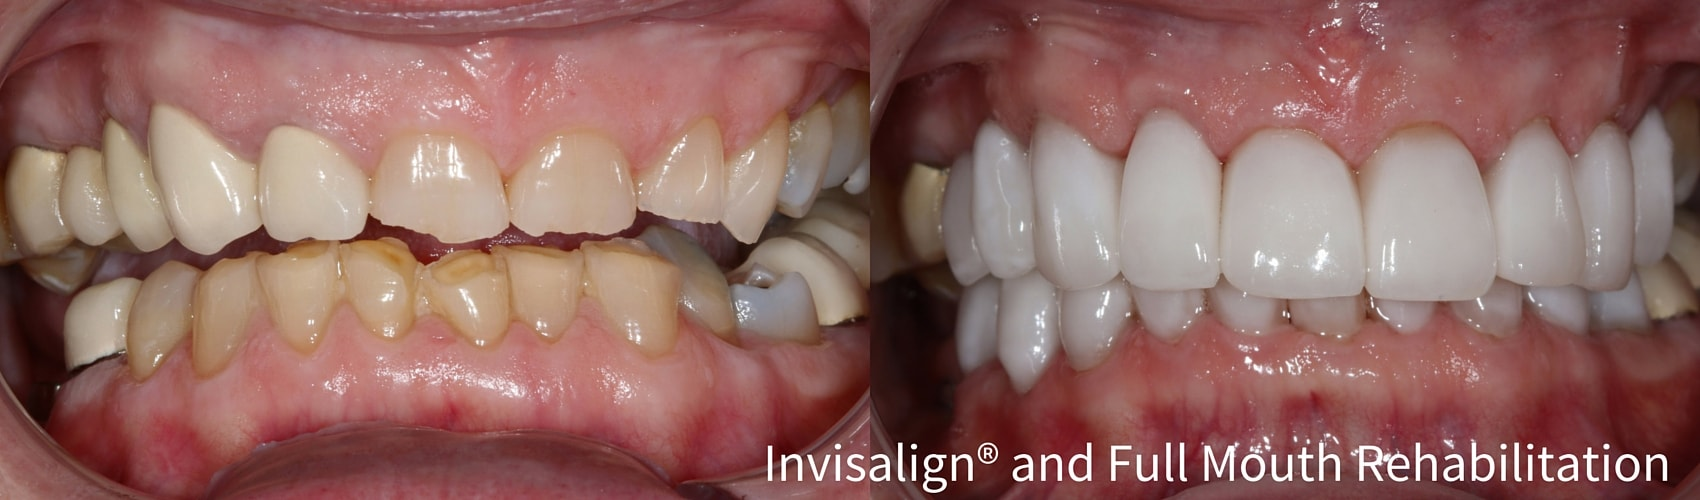 Before and after case utilizing Invisalign and full mouth rehabilitation treatment